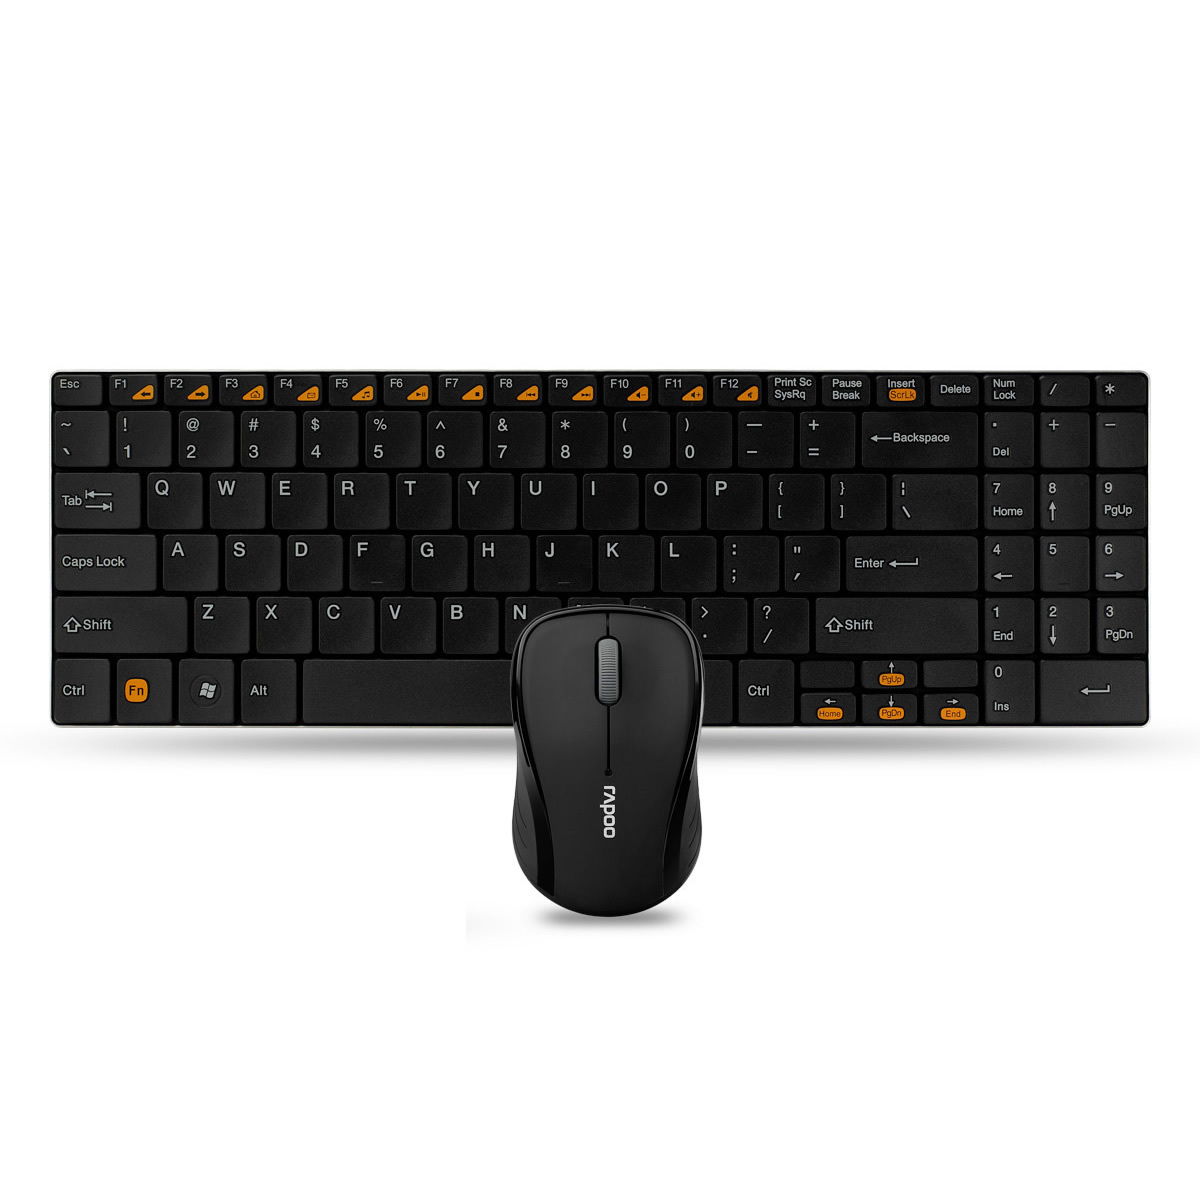 c62f86b020f Rapoo Wireless Keyboard and Mouse Combo | at Mighty Ape NZ